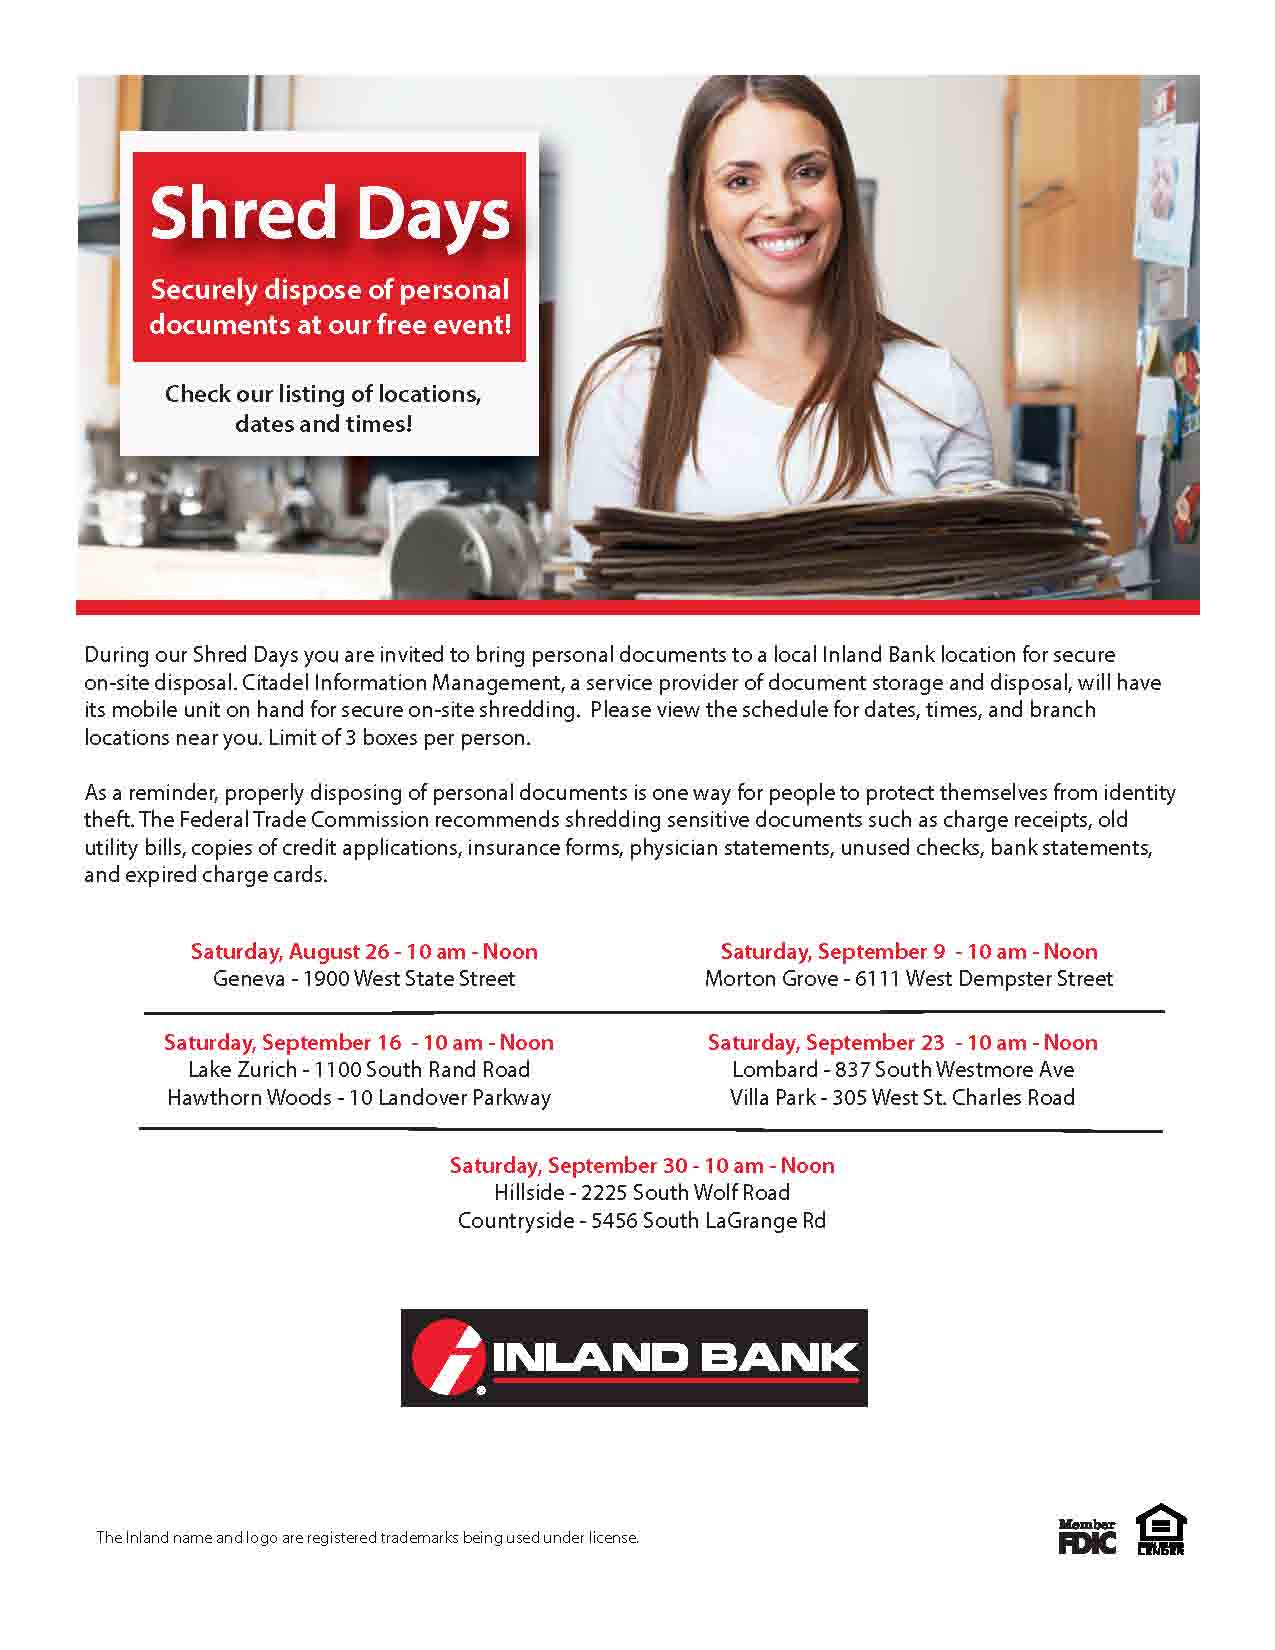 inland bank shred event | villa park chamber of commerce